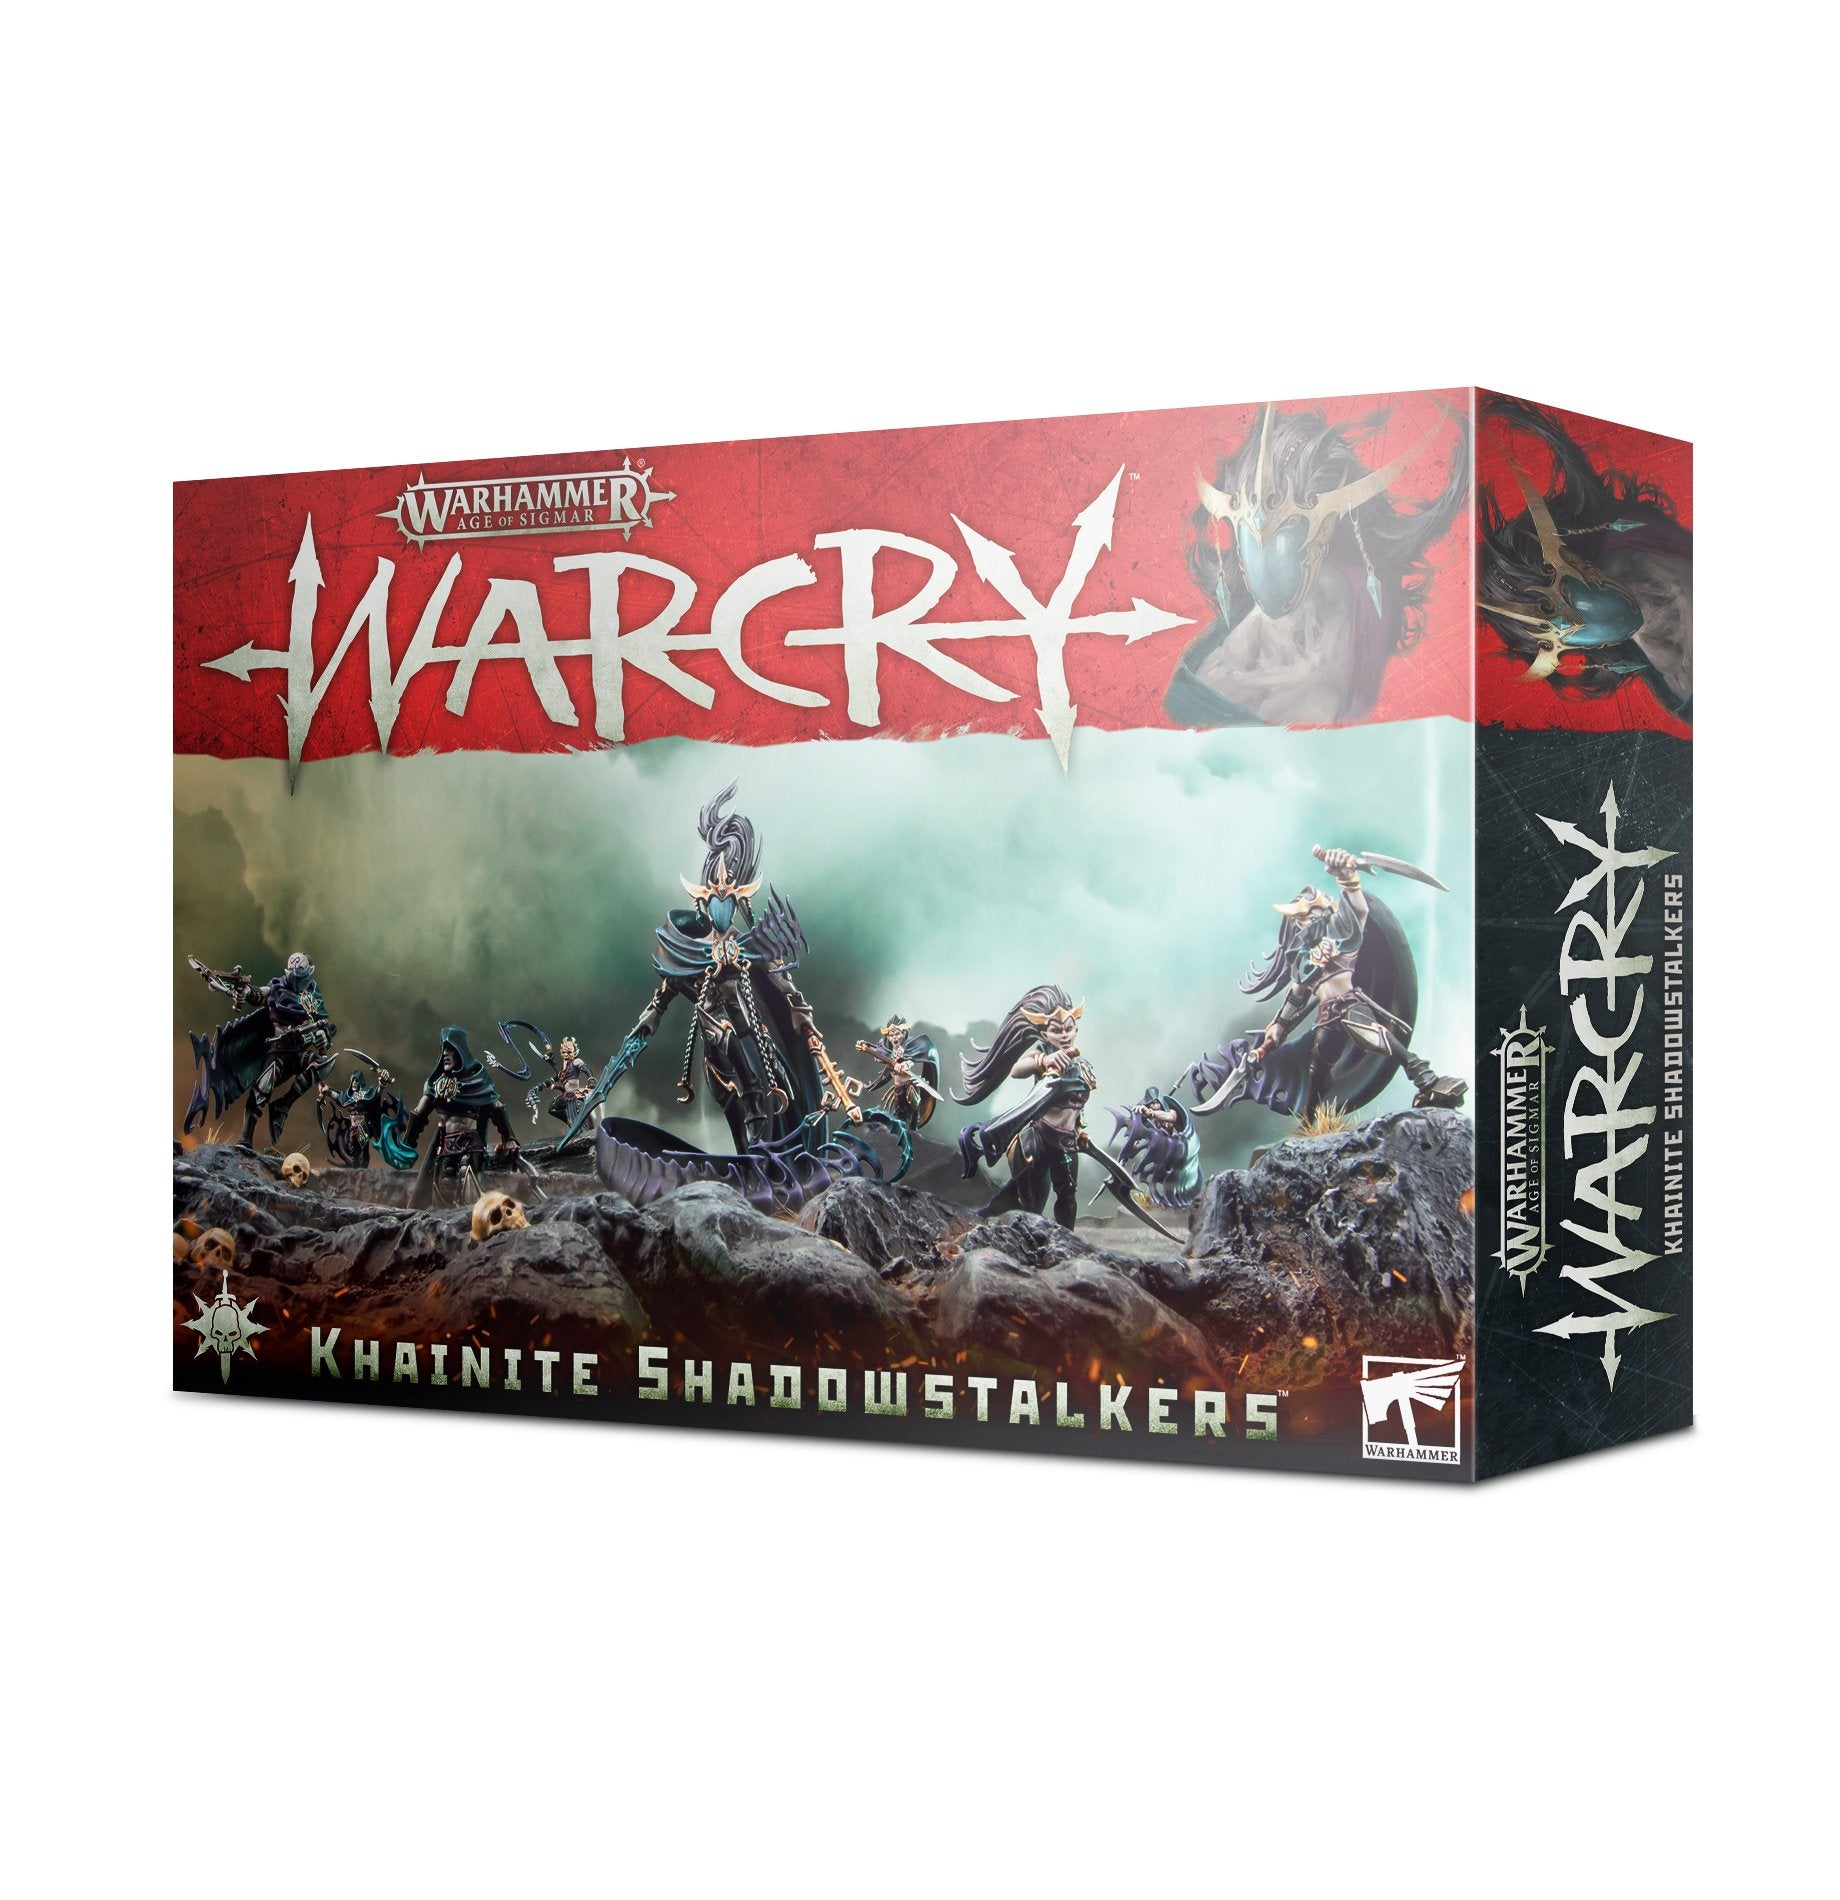 Warcry: Khainite Shadowstalkers | Out of the Box Gaming